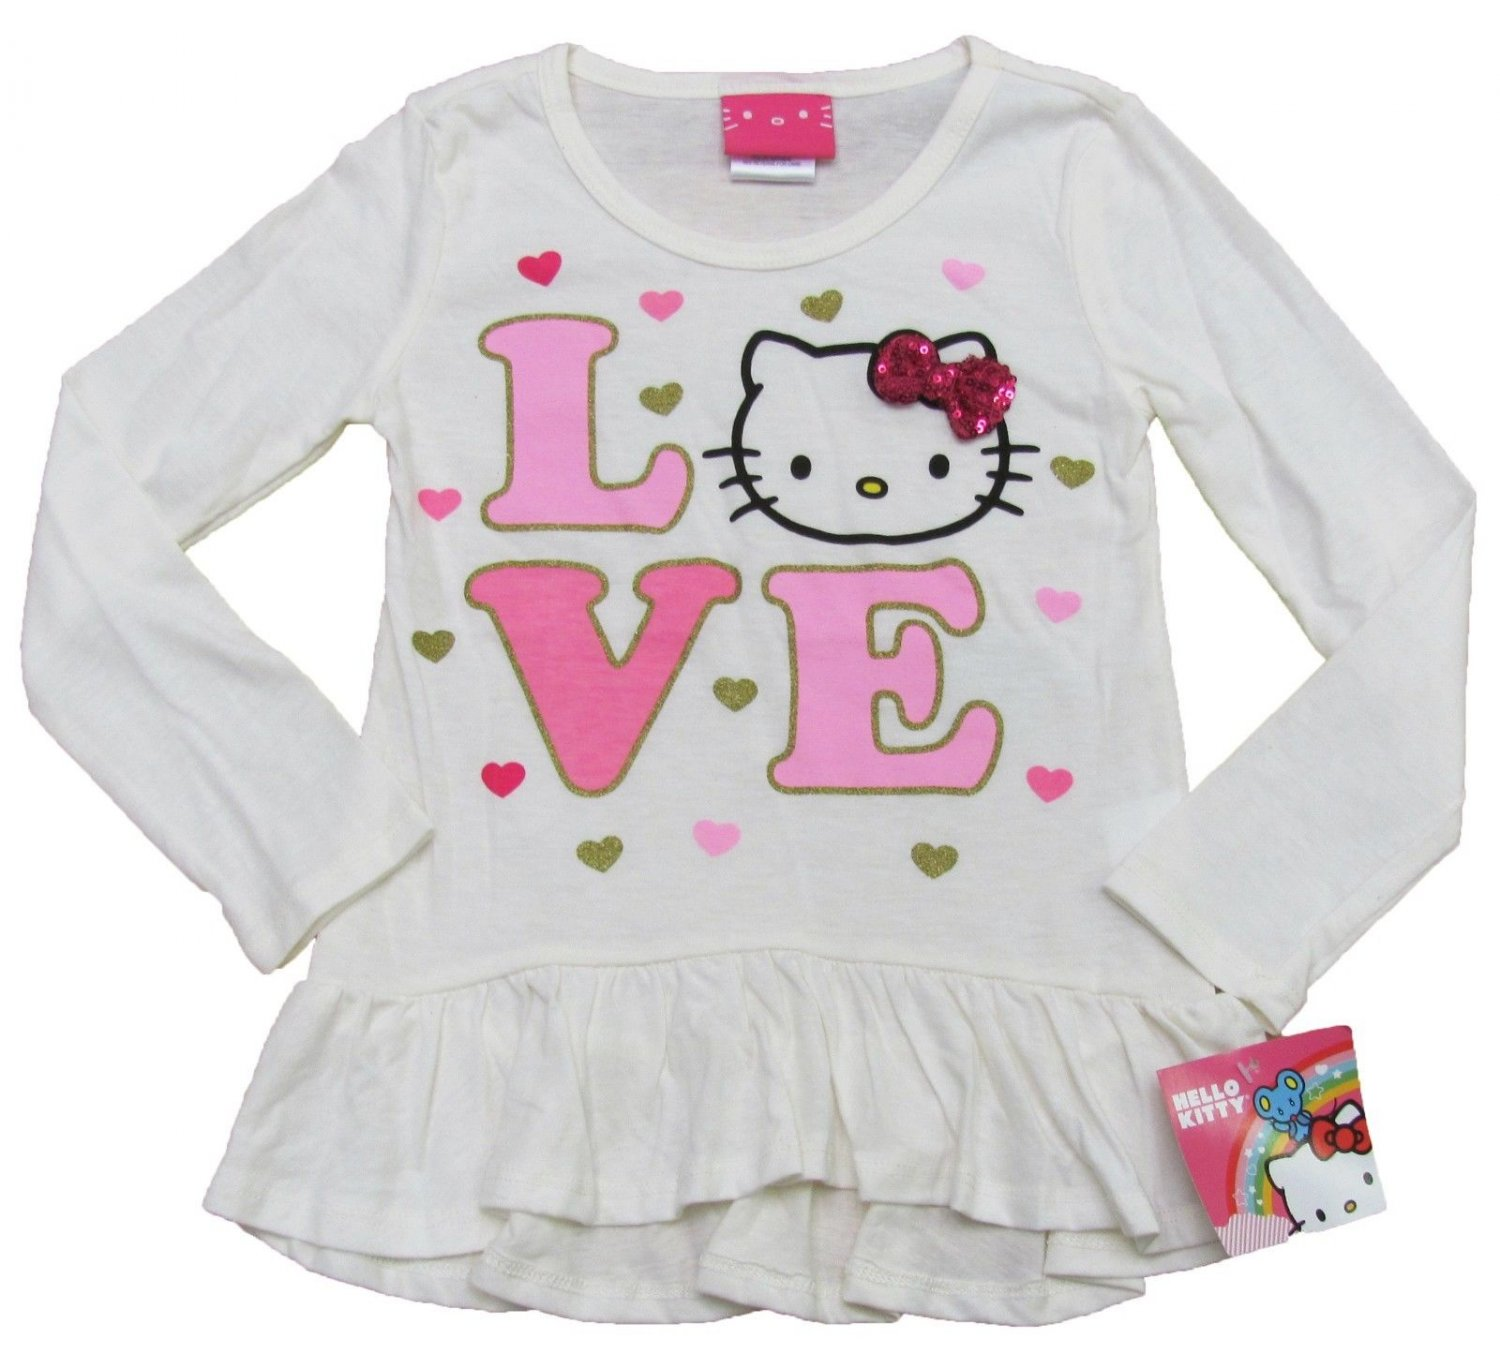 Hello Kitty Girls size 4 Long Sleeve Tee Shirt Ivory and Pink Love T-shirt New